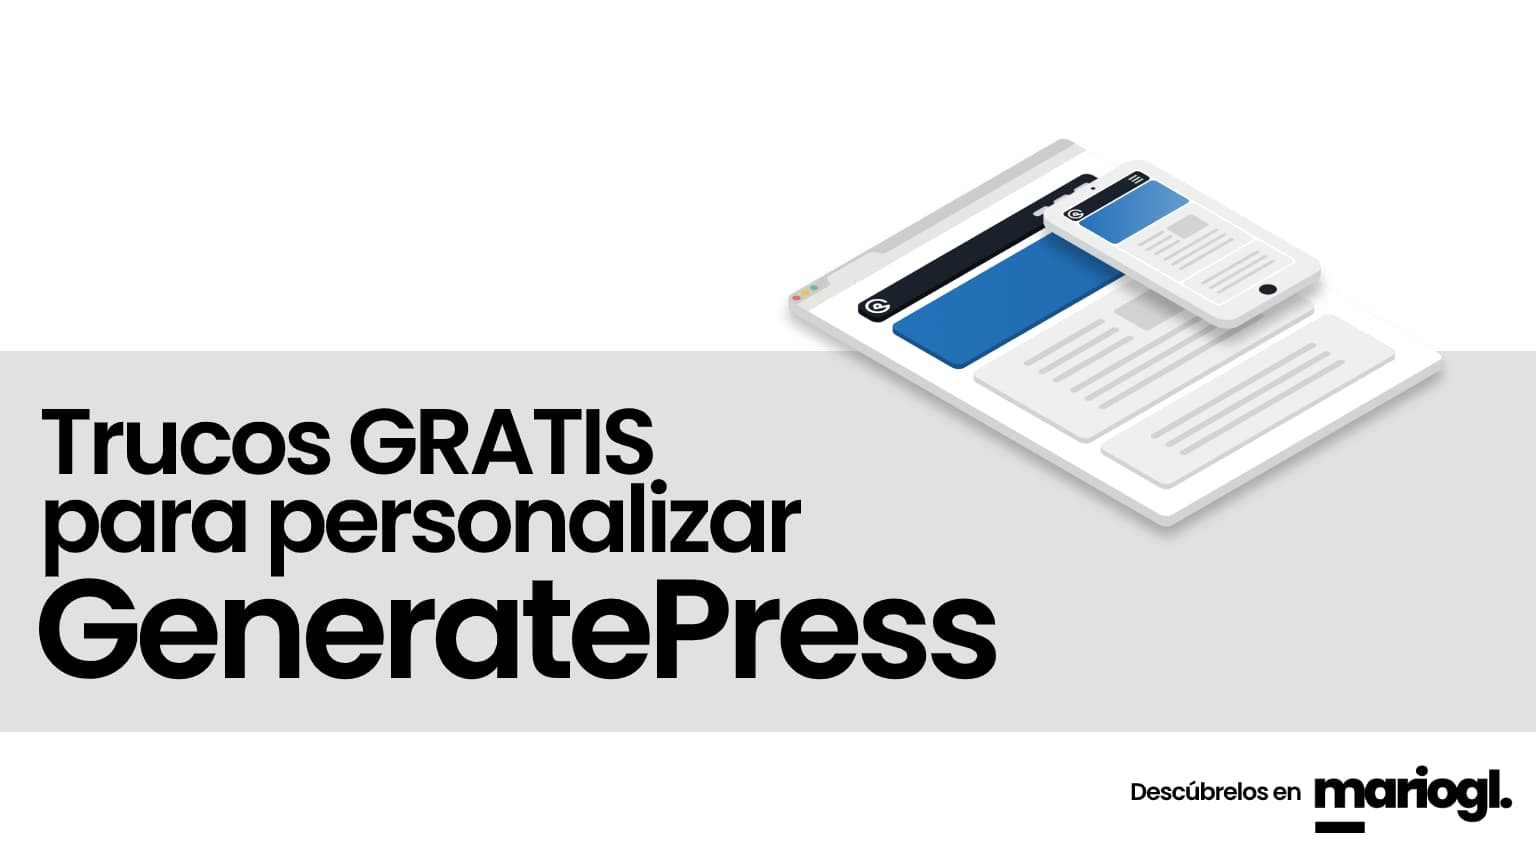 Trucos GRATIS para personalizar GeneratePress (WordPress) 2021